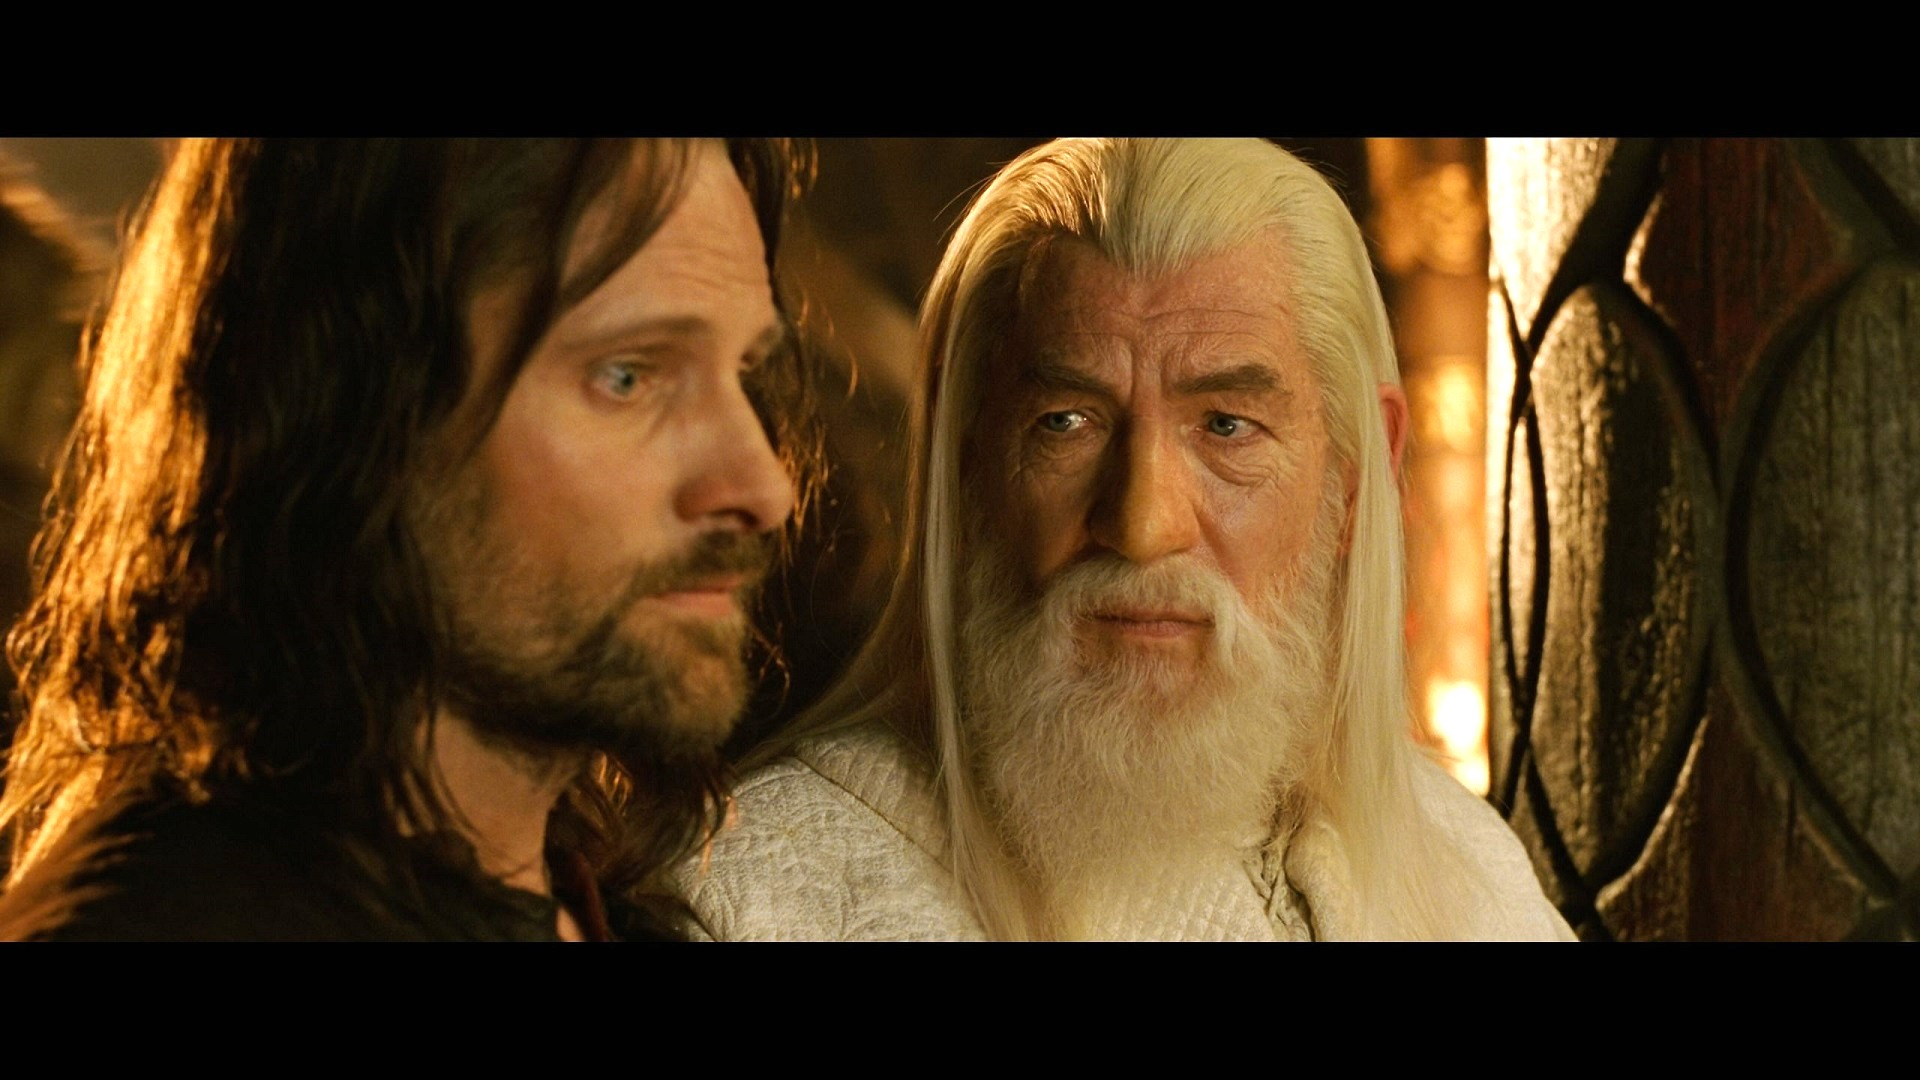 The Lord of the Rings: The Motion Picture Trilogy 4K Ultra HD Blu-ray Review: The Basics Screenshots Stills and Video